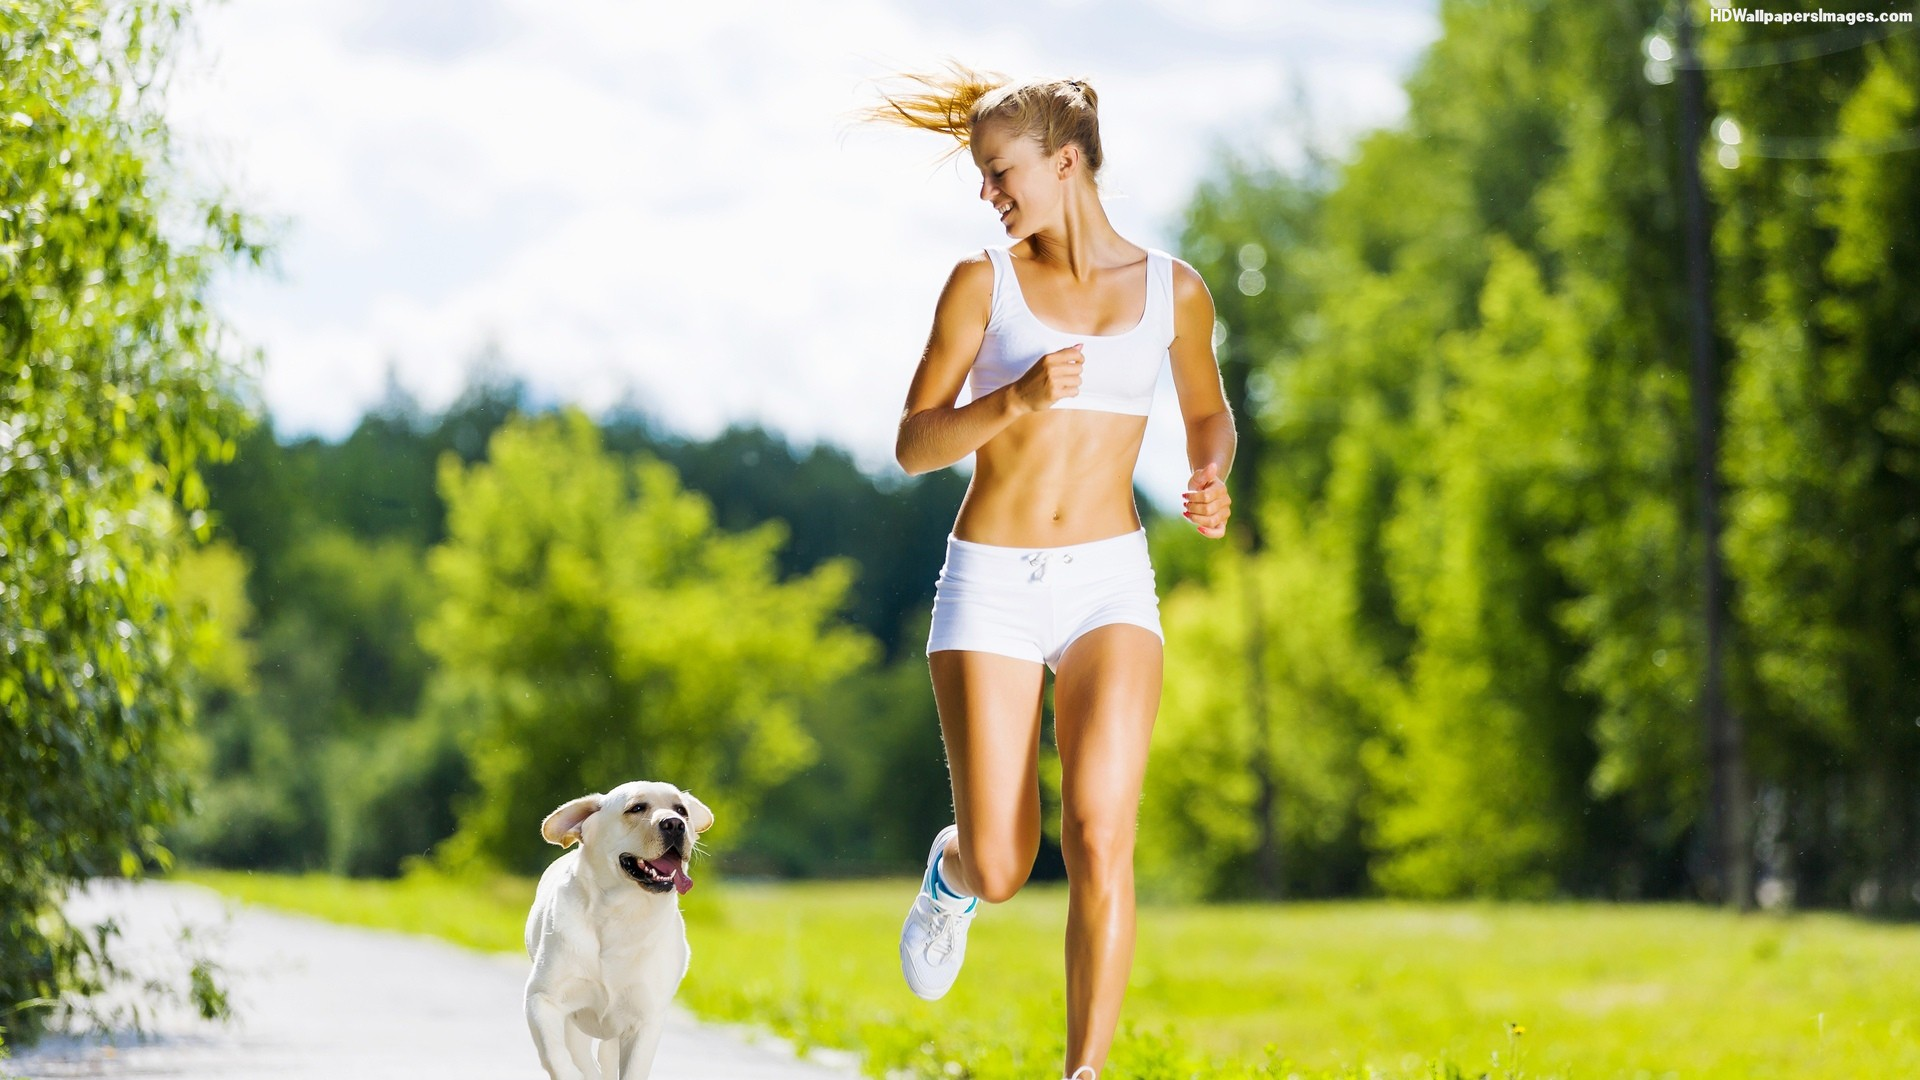 10 Fitness tips for better results and health